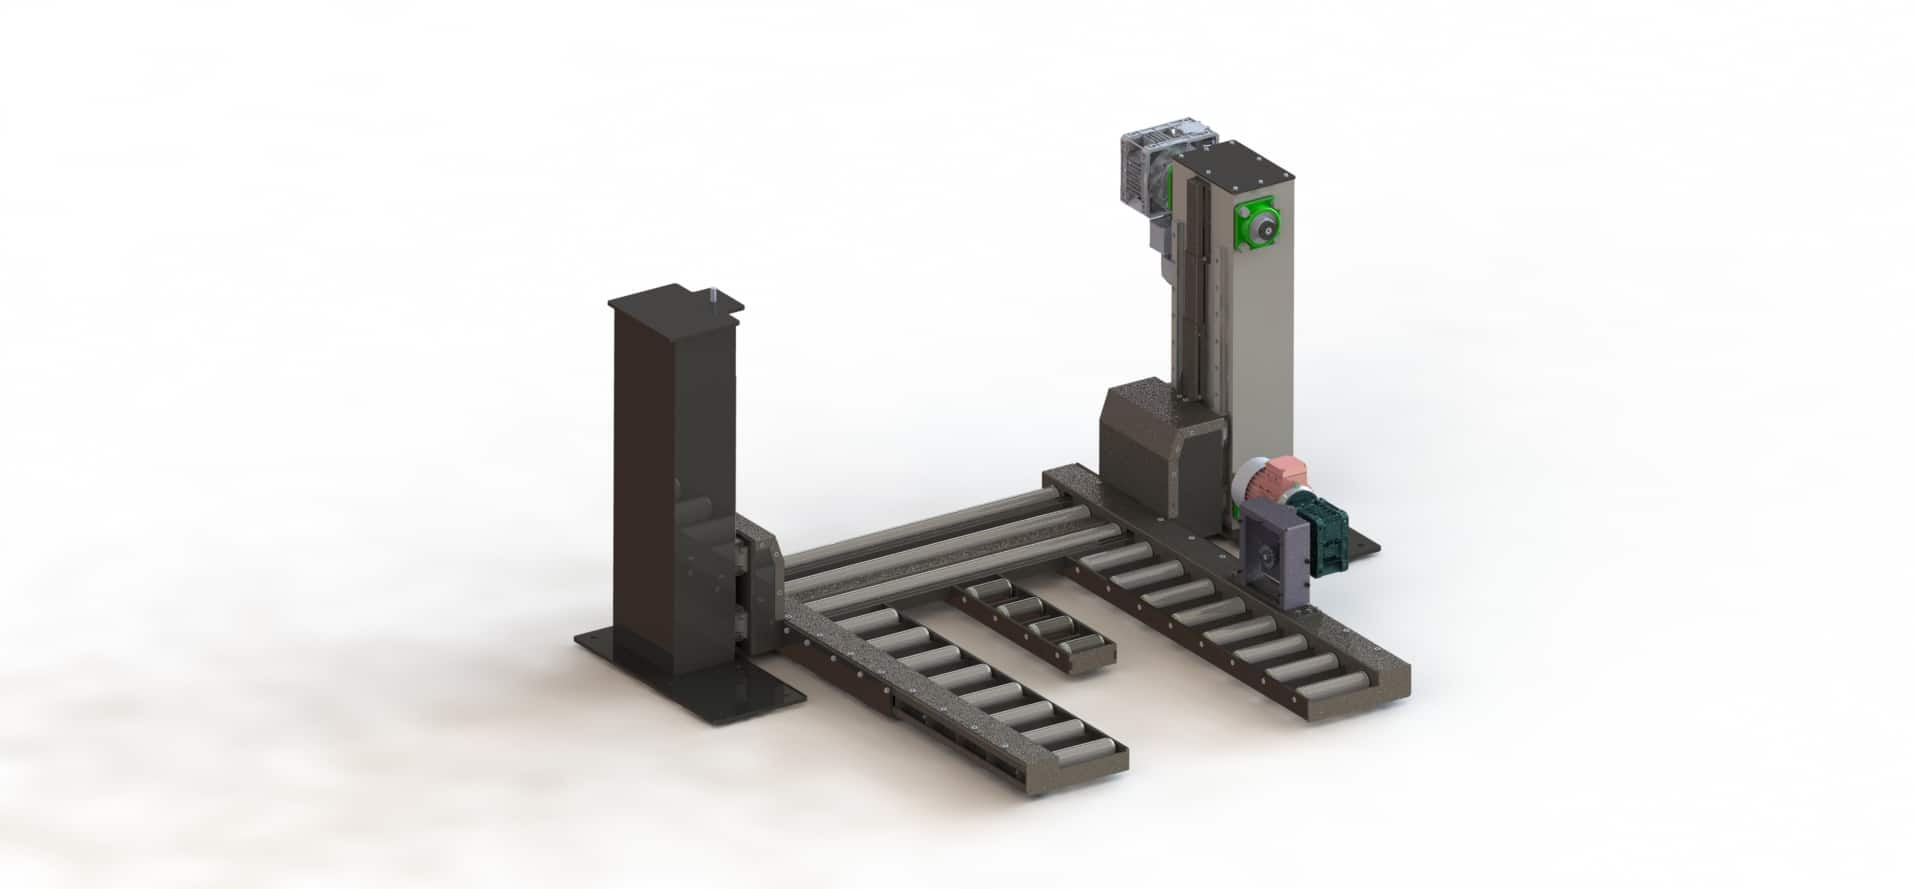 ironlift - IronLift - The strong, electric pallet lift.